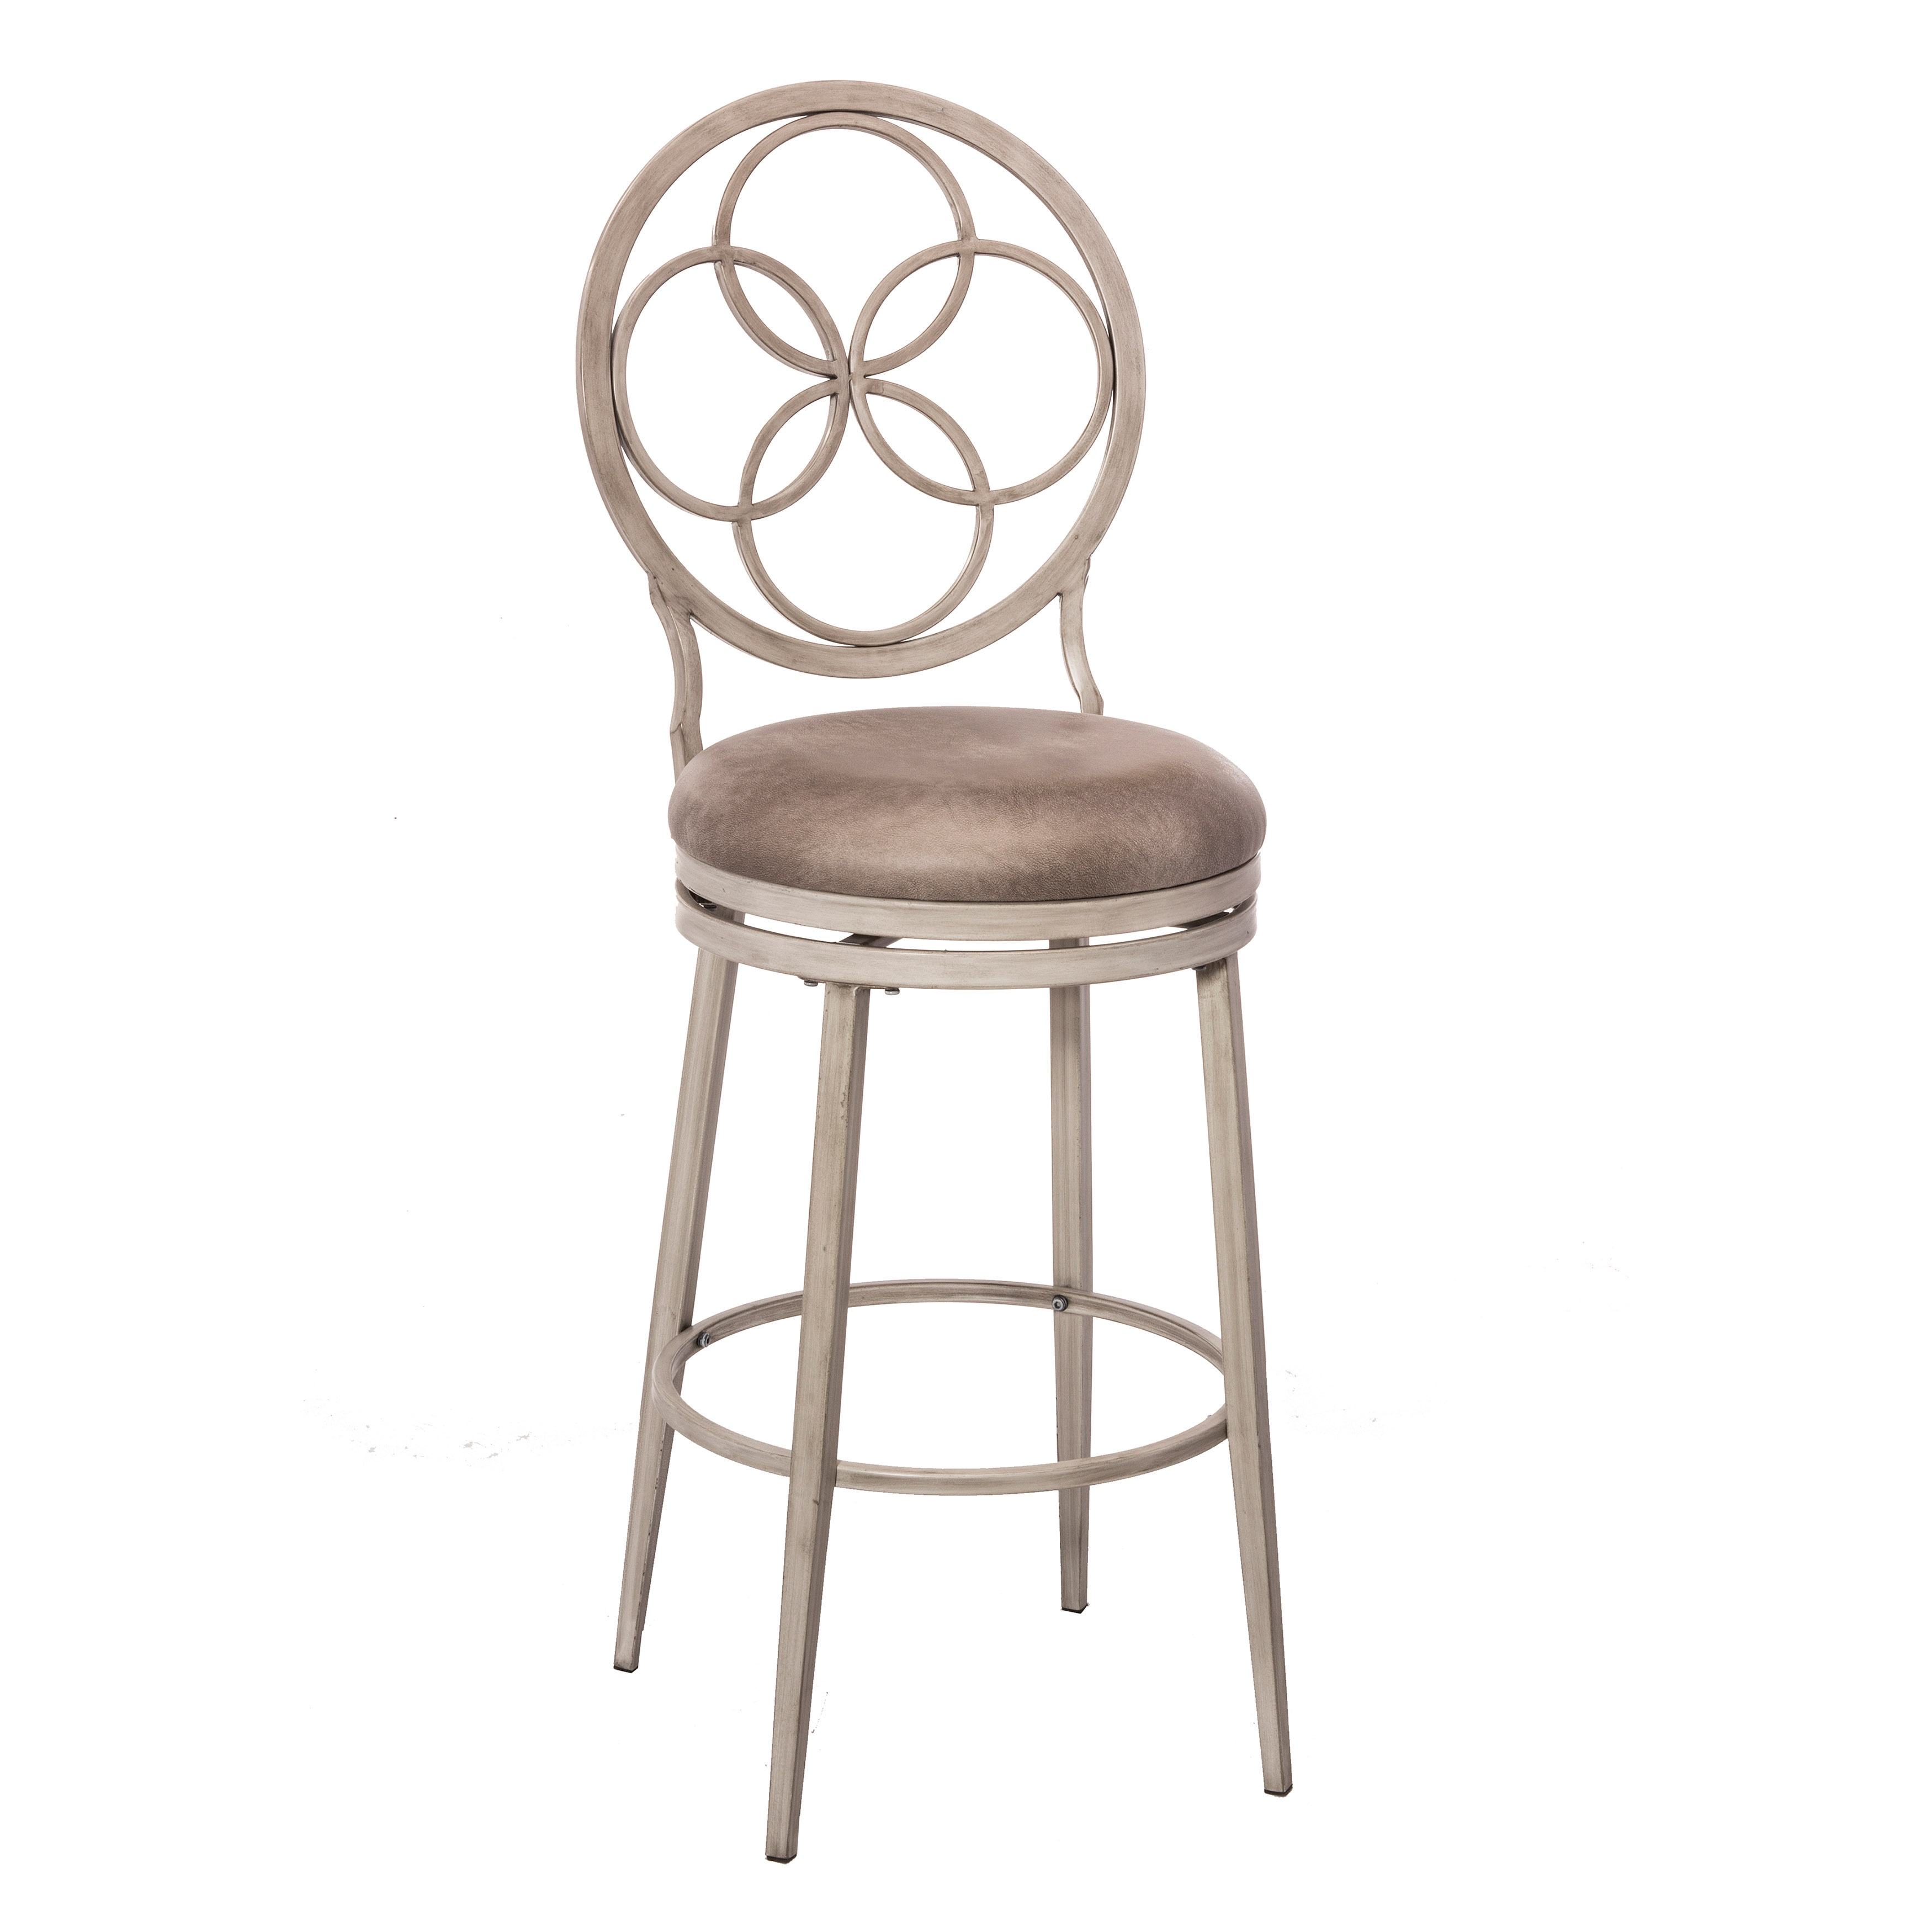 Magnificent Hillsdale Furniture Donnelly Swivel Bar Stool Weathered Grey With Granite Fabric Inzonedesignstudio Interior Chair Design Inzonedesignstudiocom